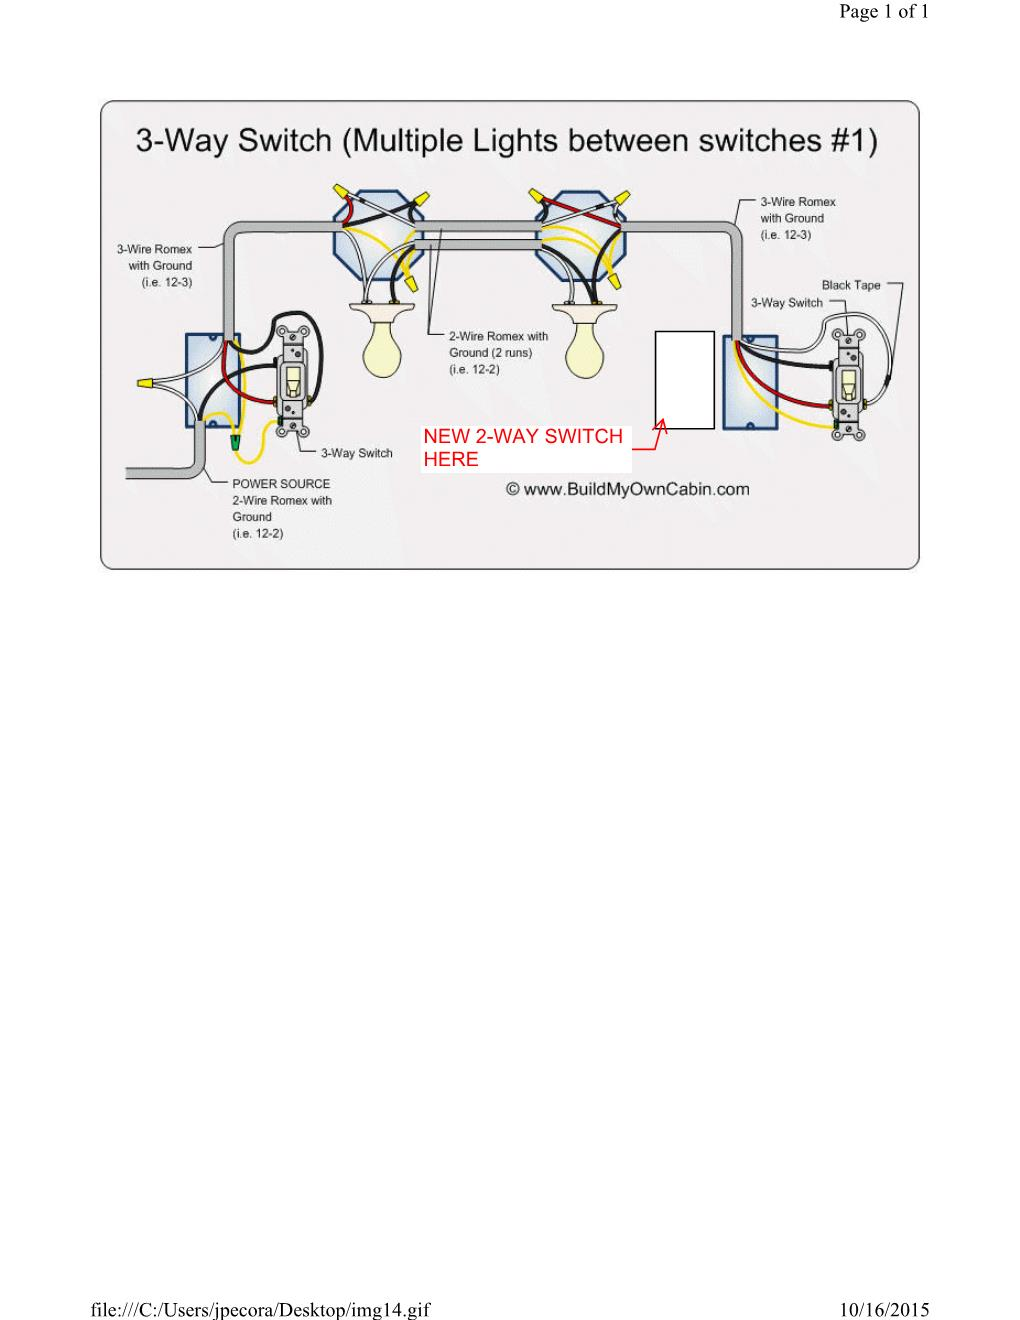 how to wire a single pole switch diagram fender wiring diagrams schematic next 3 way home roiugh swicth